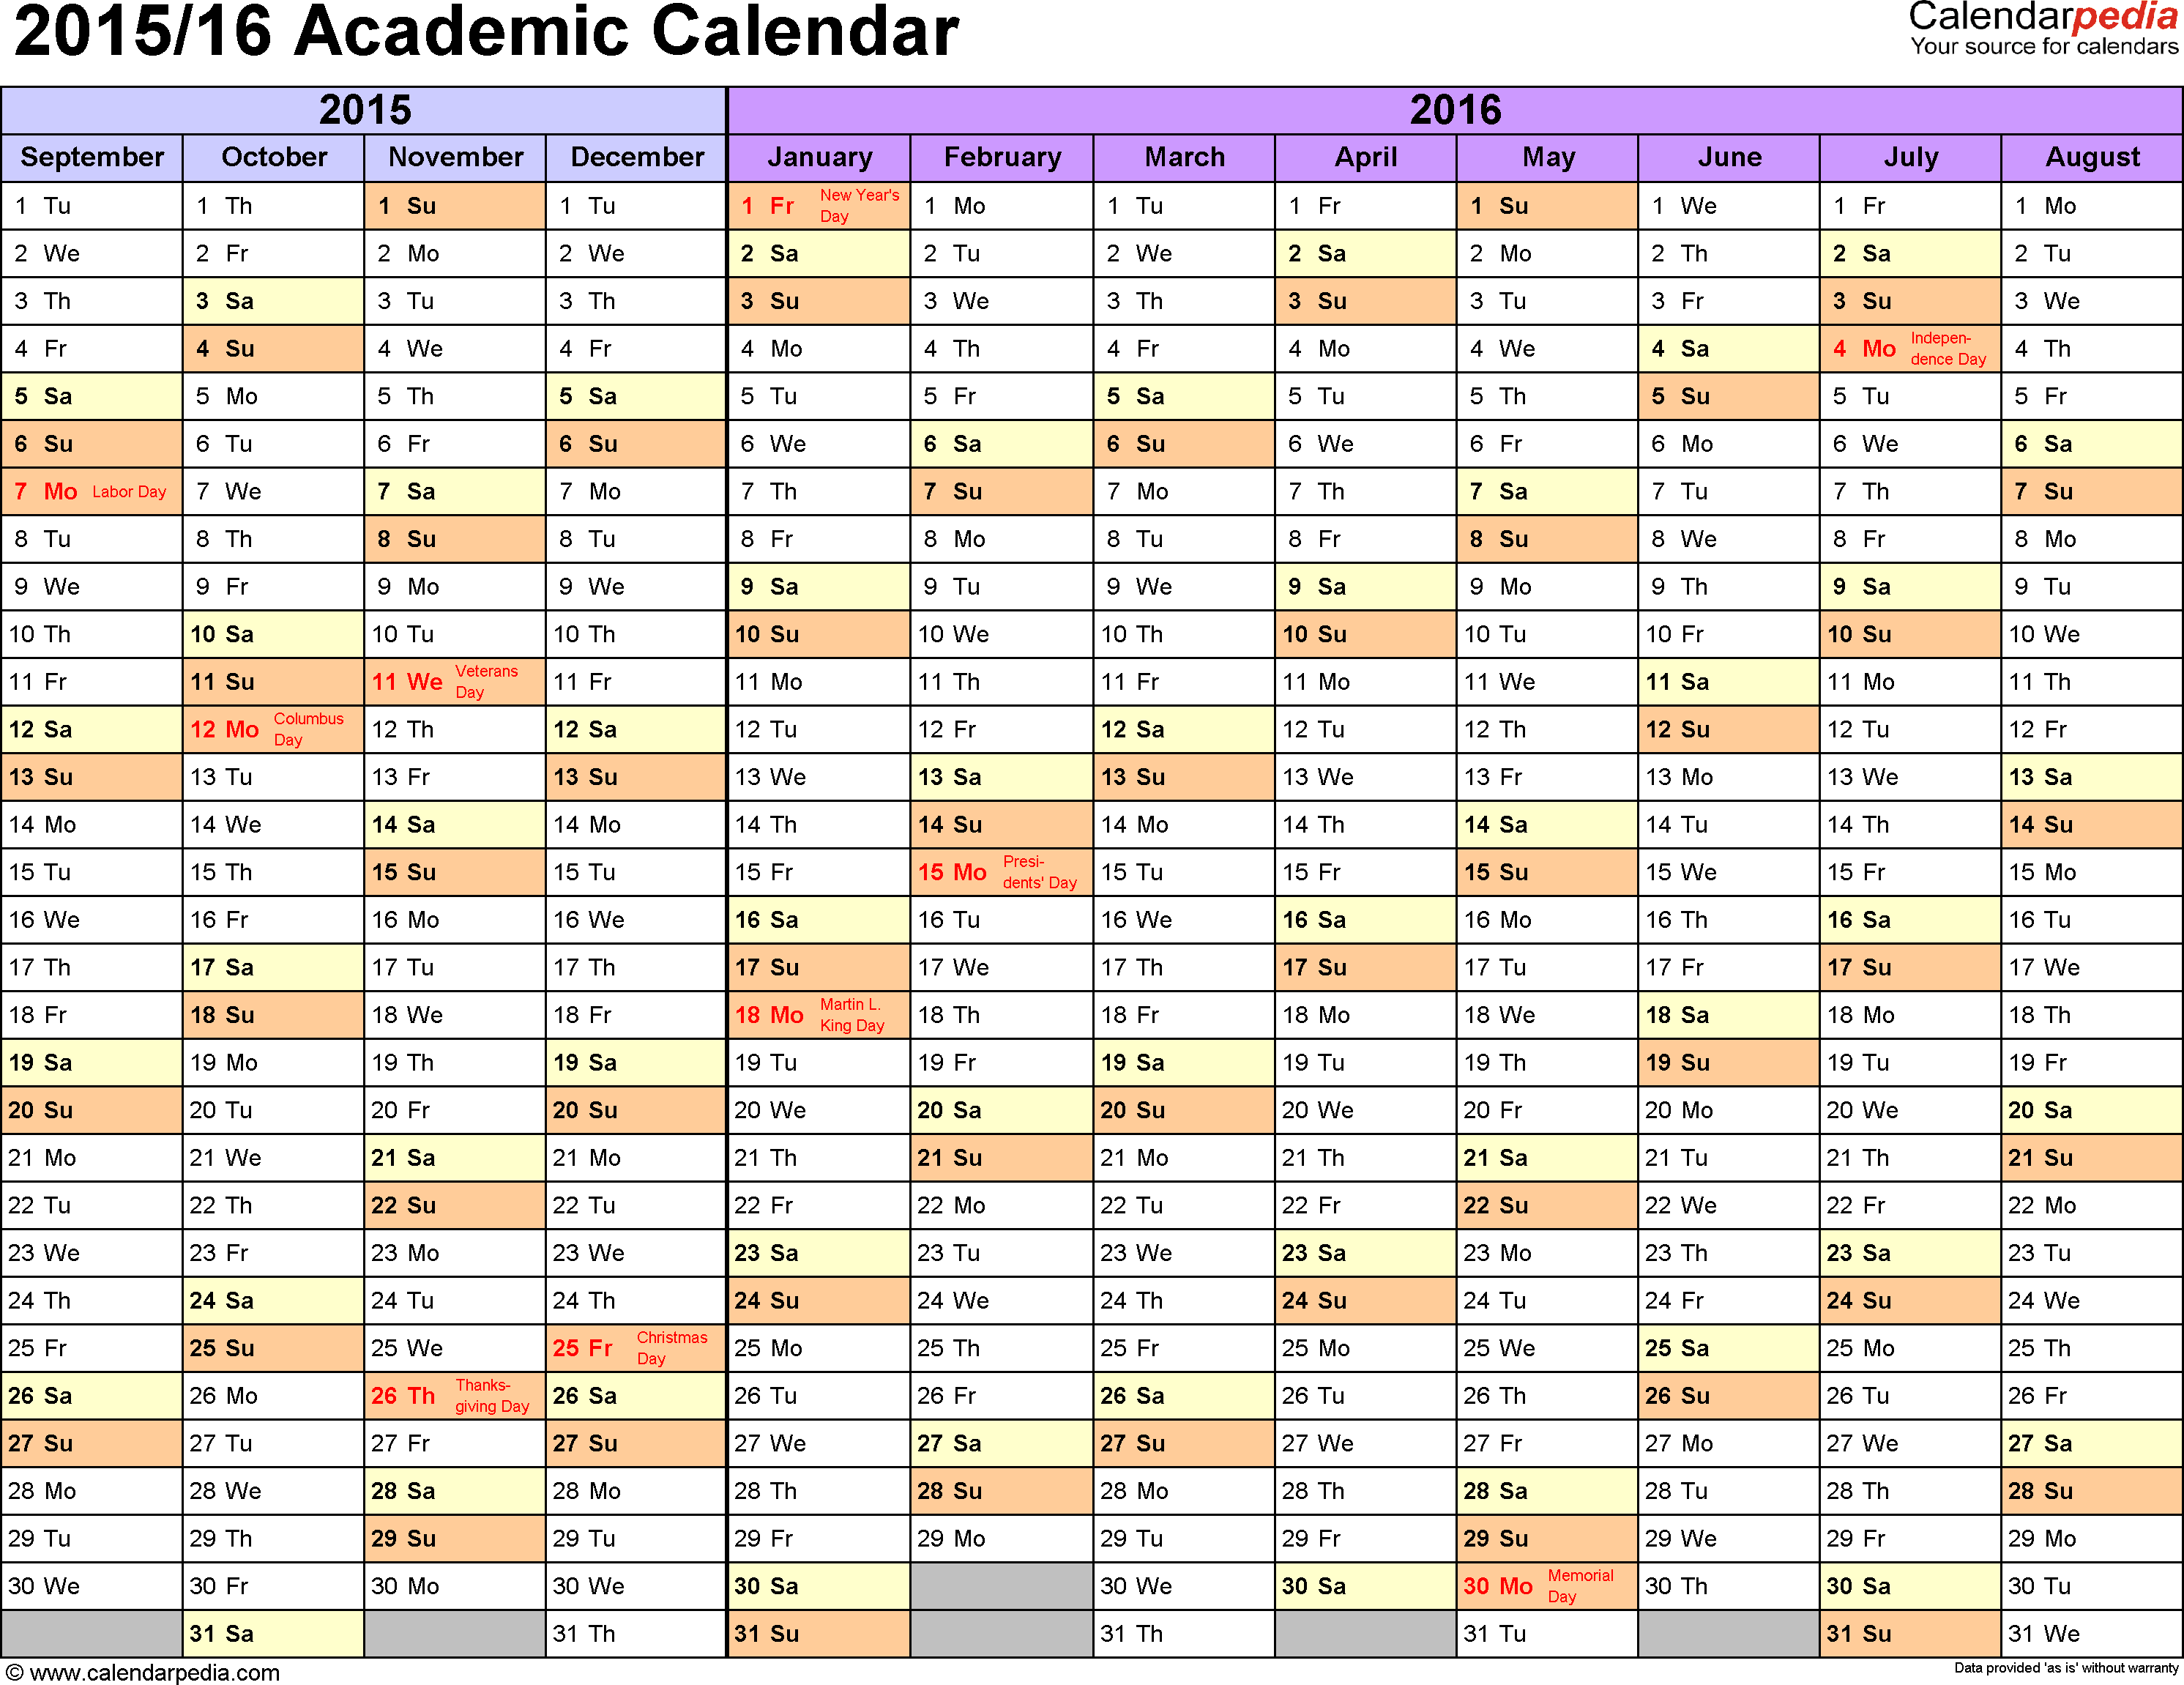 Download Template 1: Academic calendar 2015/16 in PDF format, landscape, 1 page